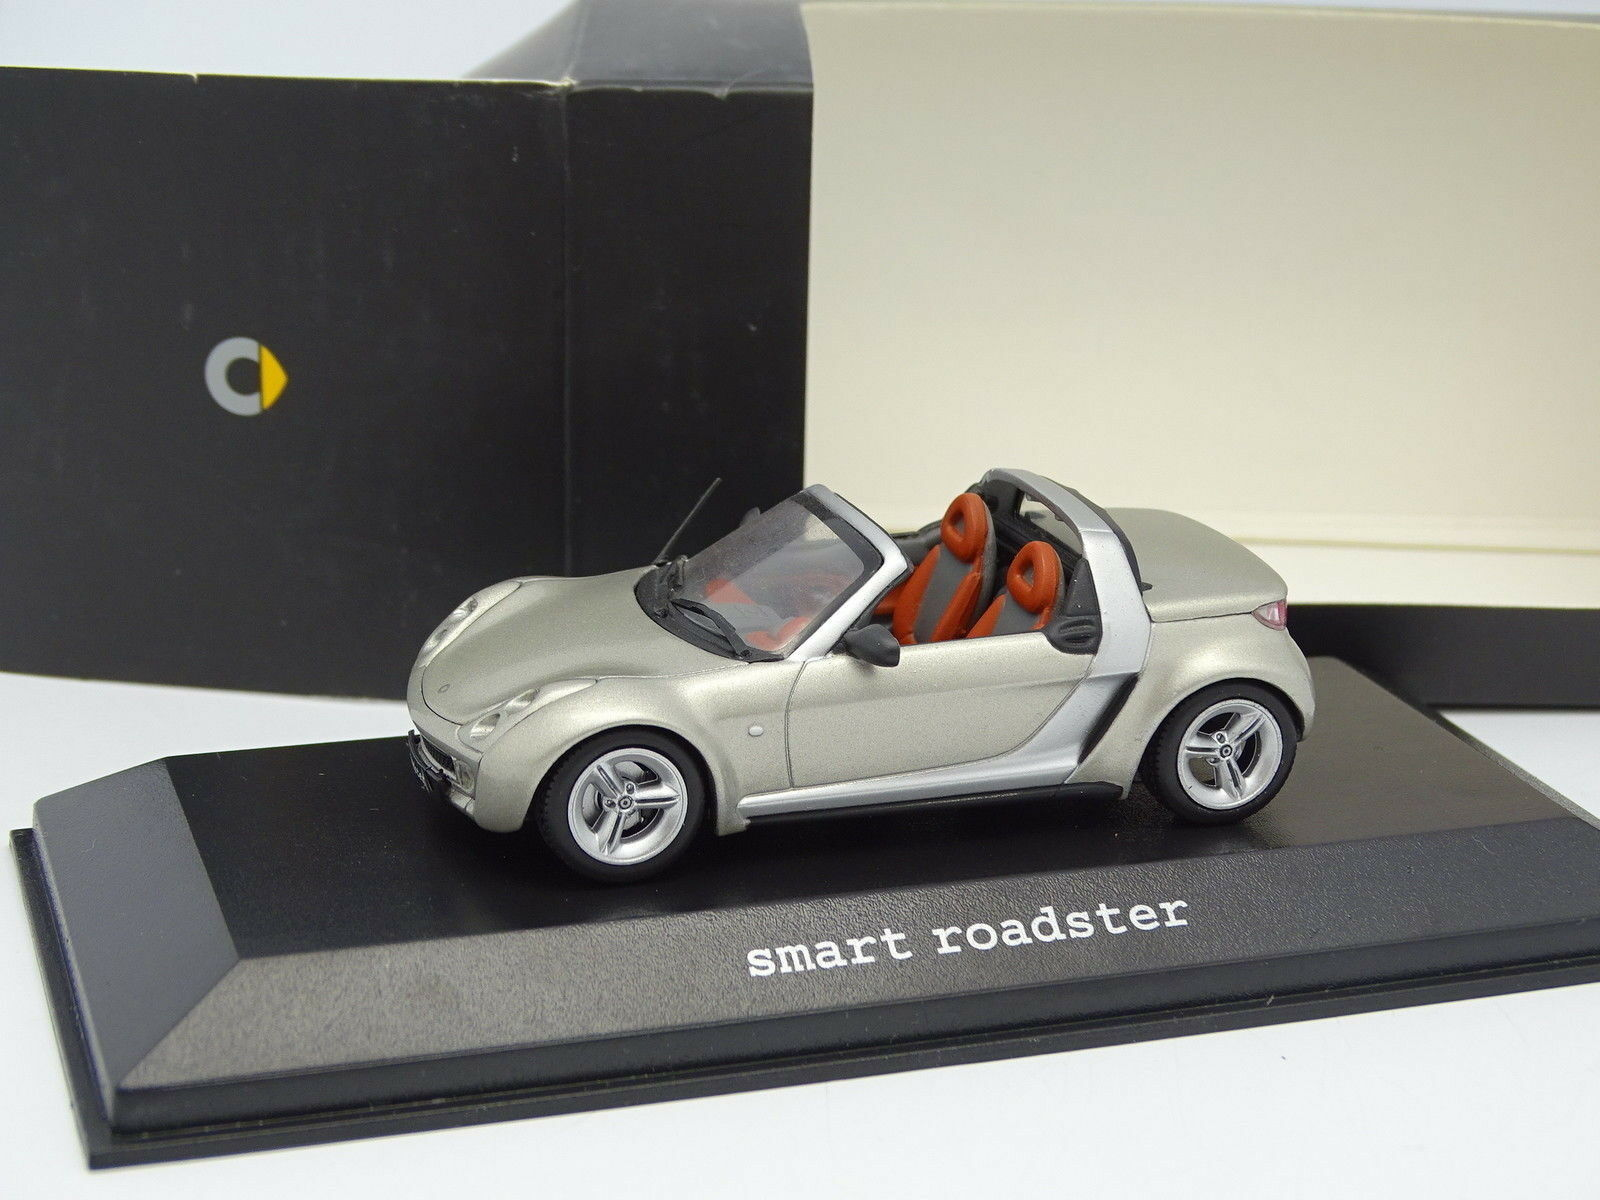 Minichamps 1 43 - smart roadster champagne